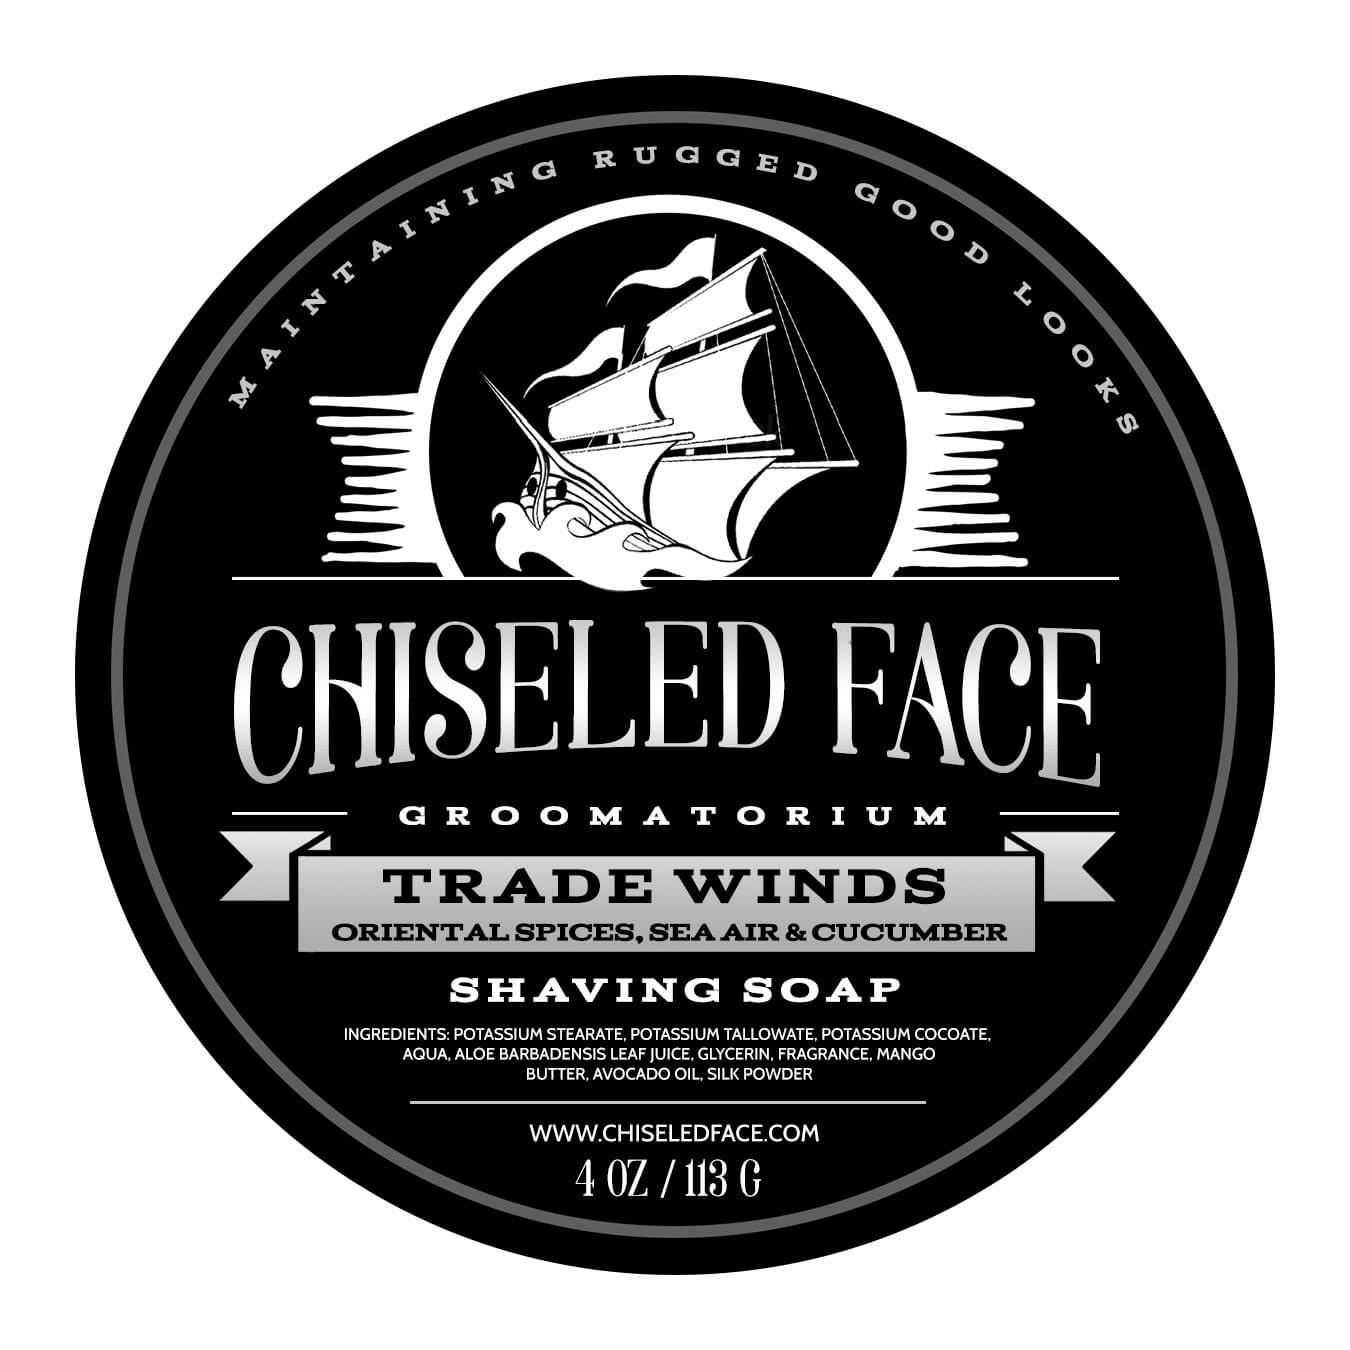 Chiseled Face - Trade Winds - Soap image